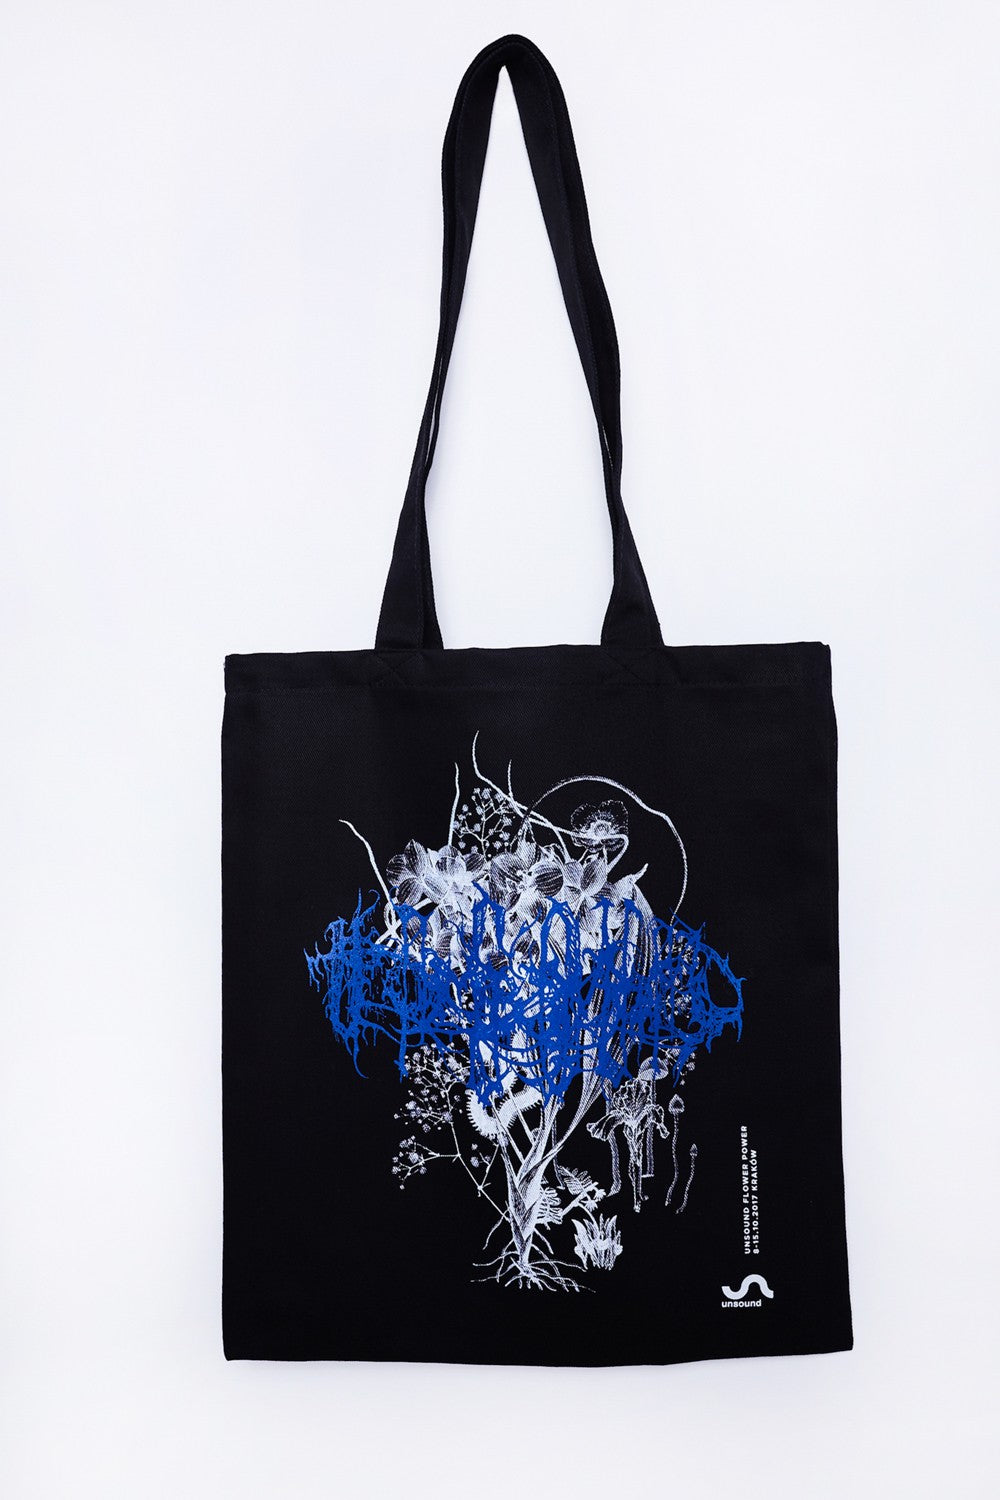 Unsound flower power tote bag - black or white